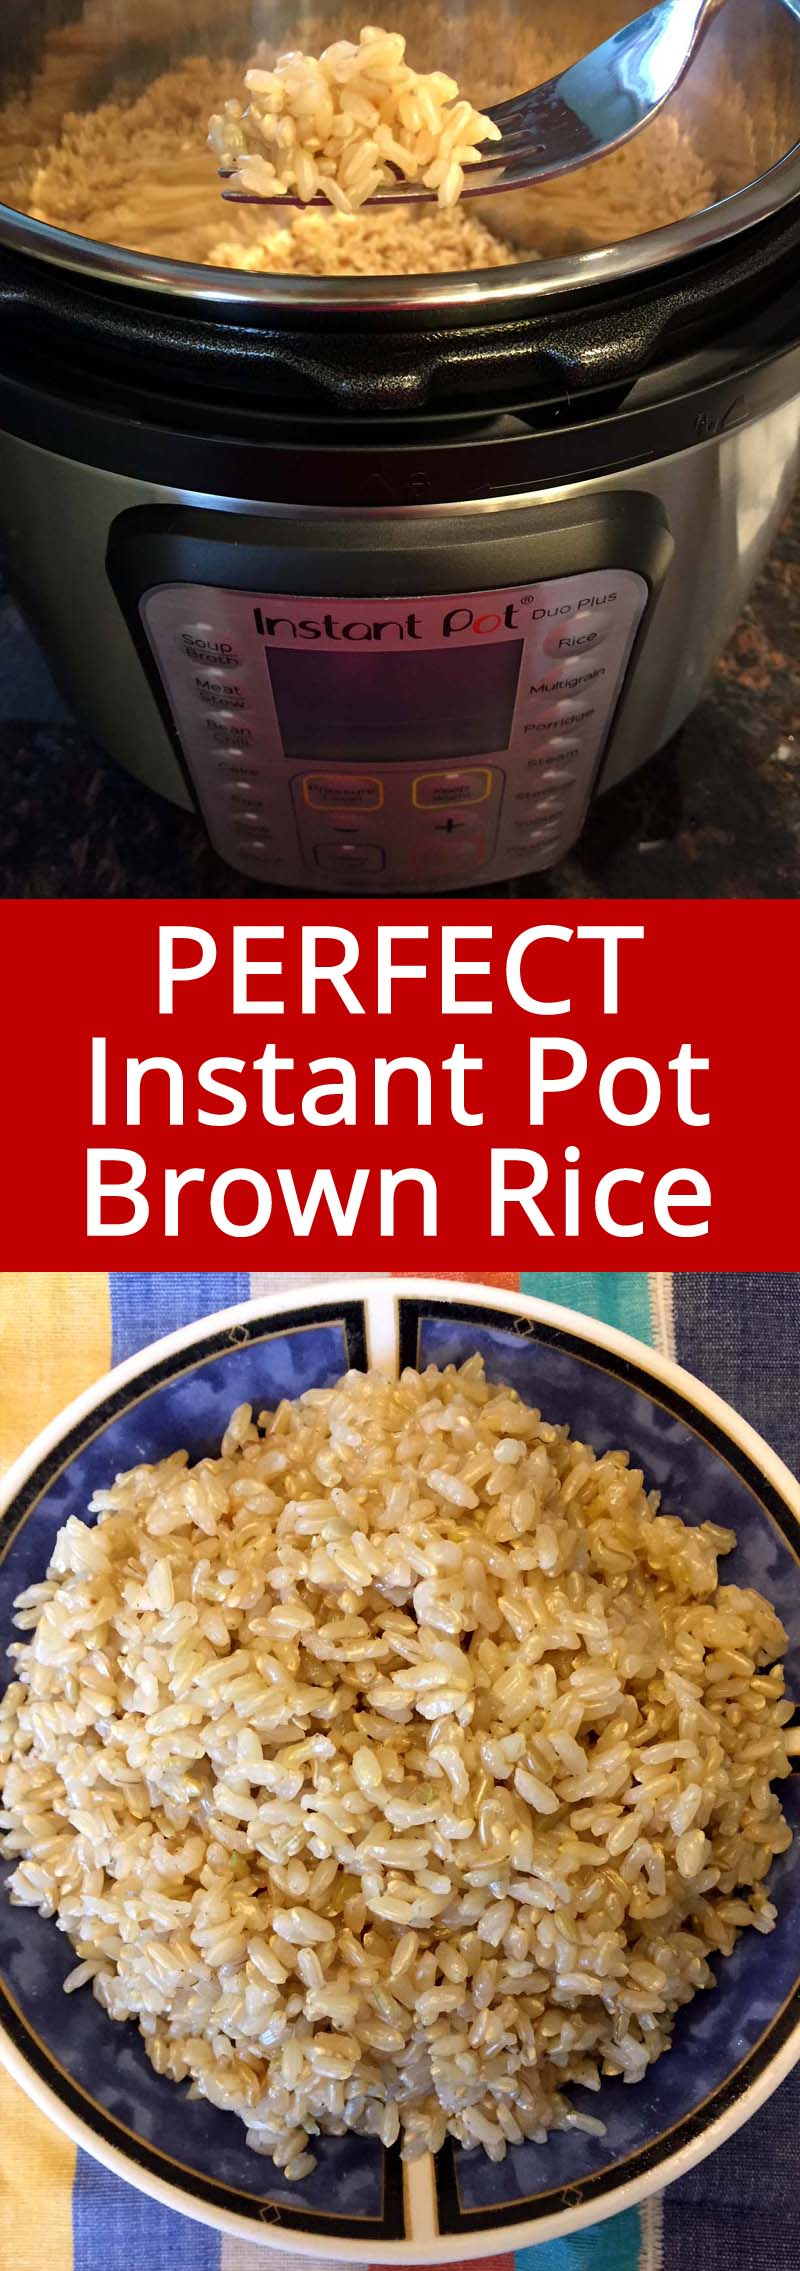 This recipe makes perfect Instant Pot brown rice!  So easy and the rice comes out perfect! I now always use my Instant Pot to cook brown rice! #instantpot